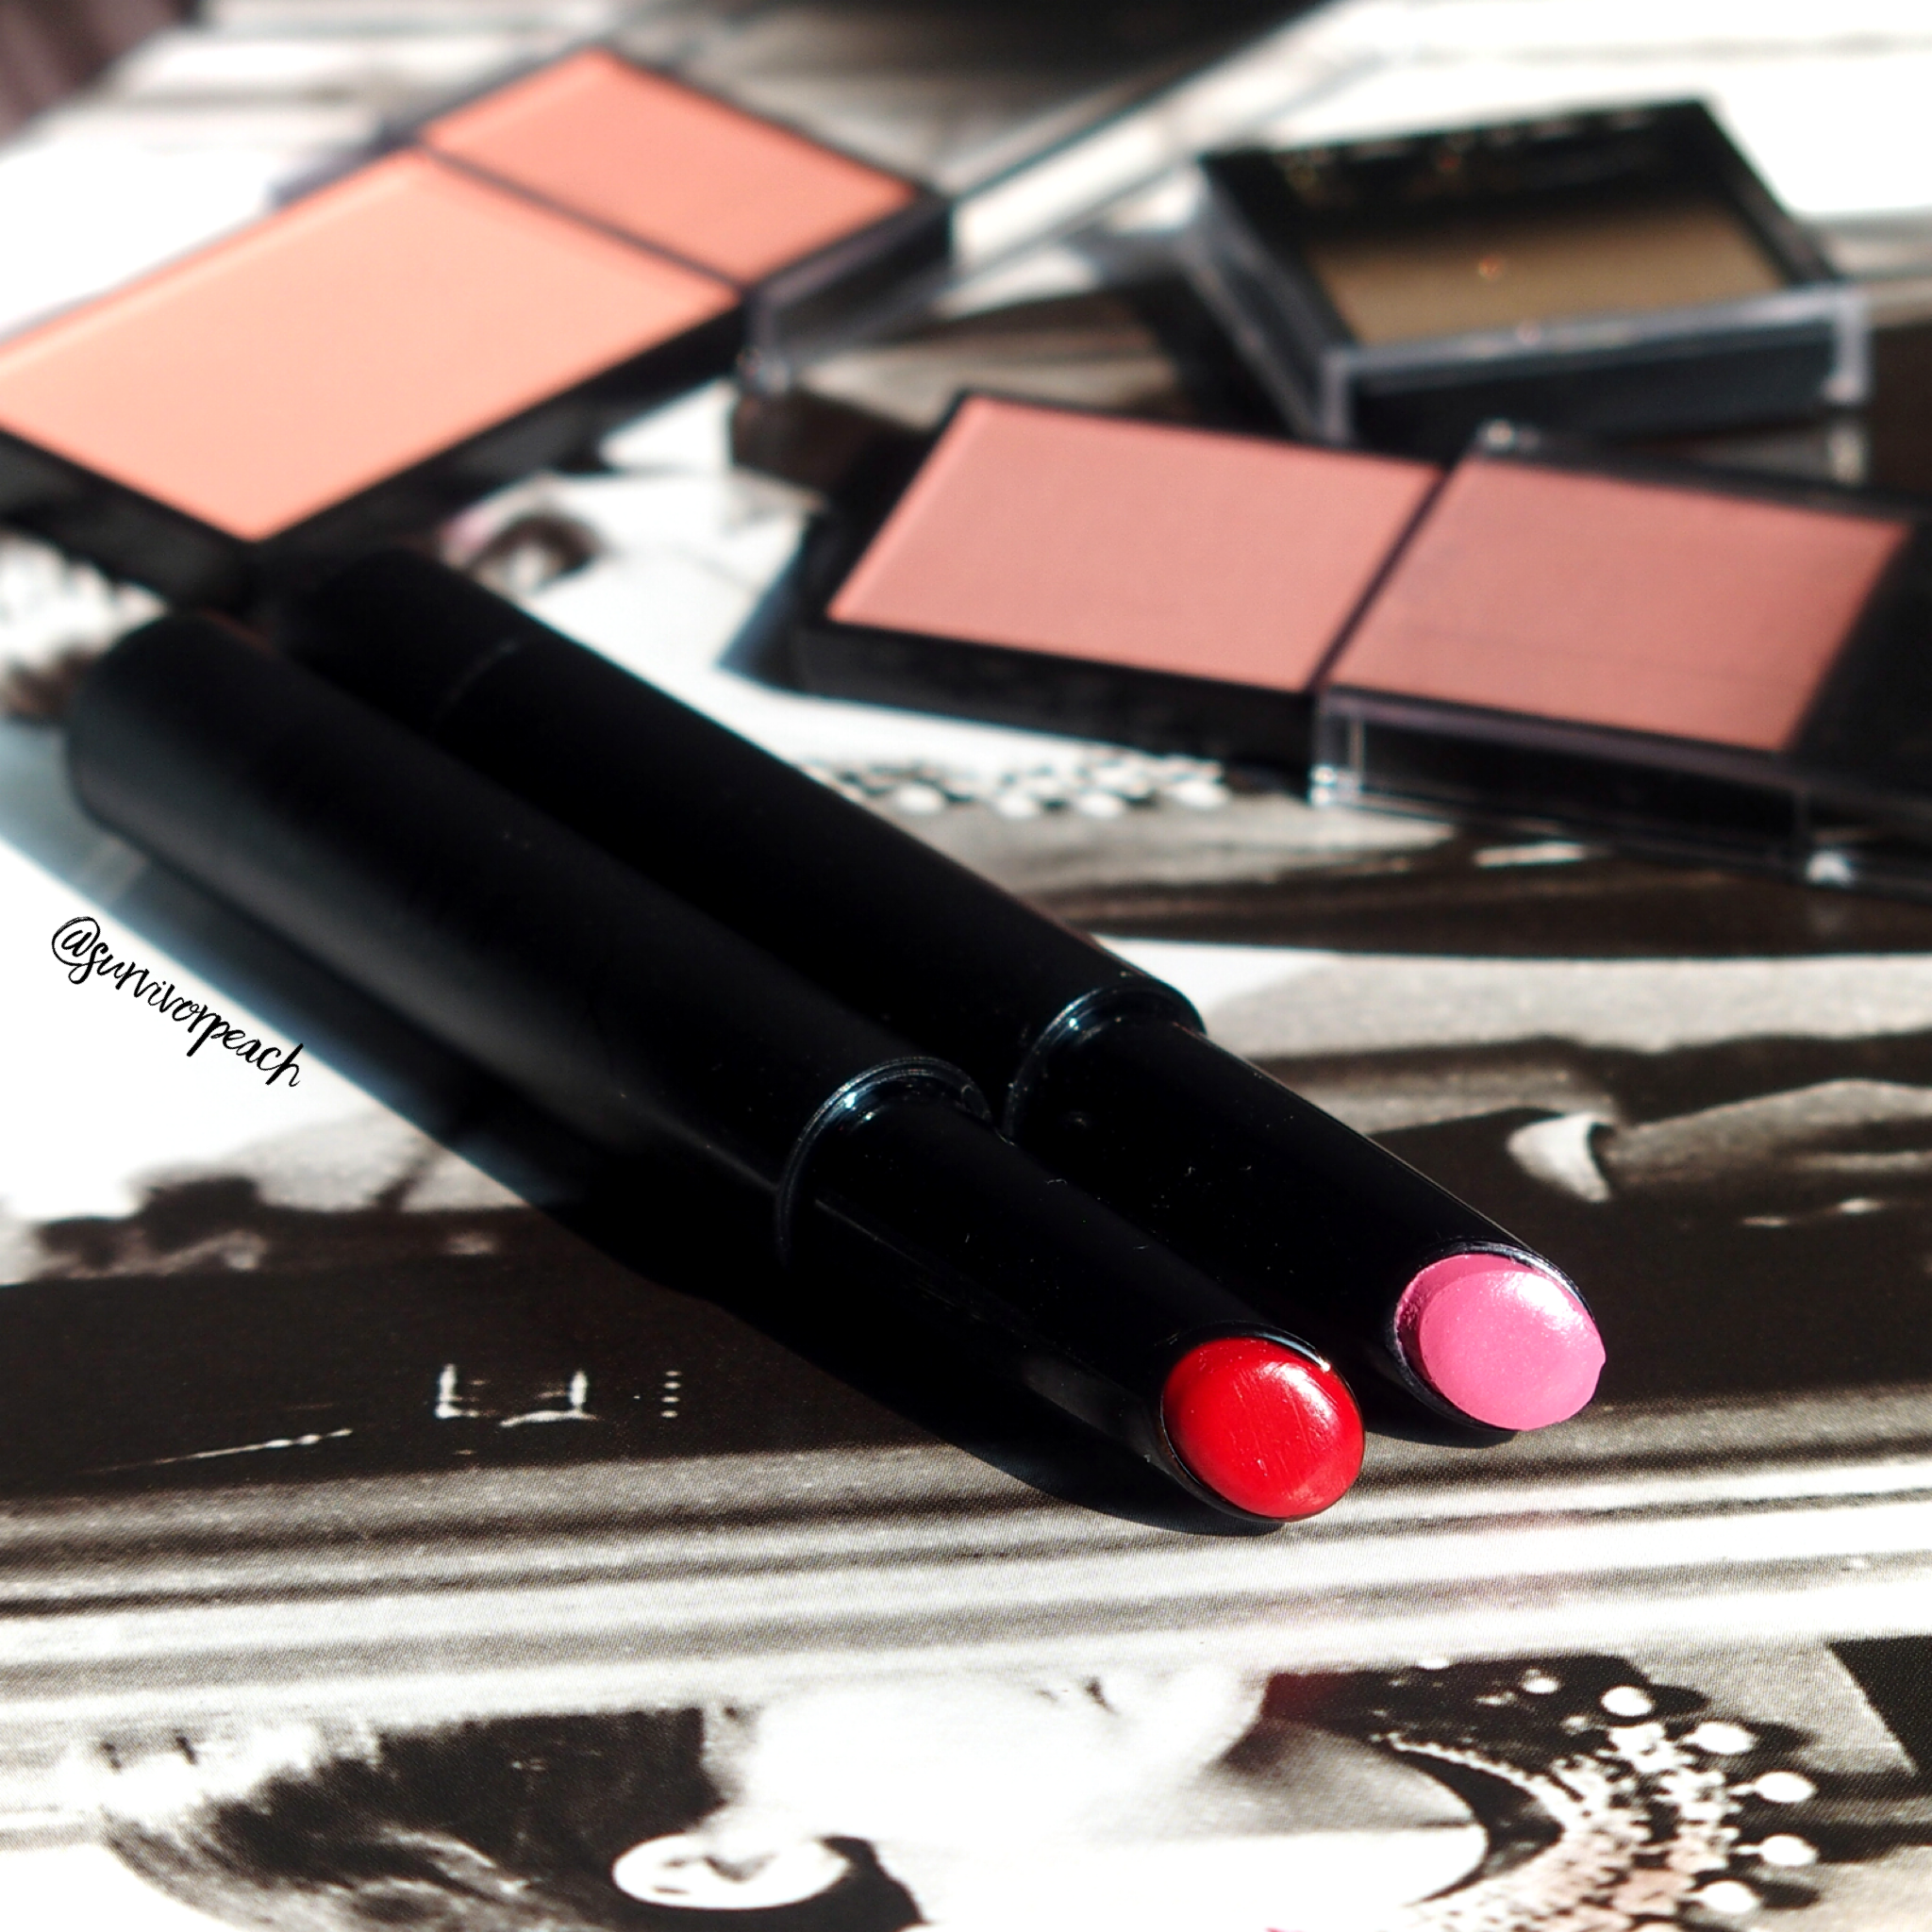 Lipslique   in shade Pom Pon and Rubis